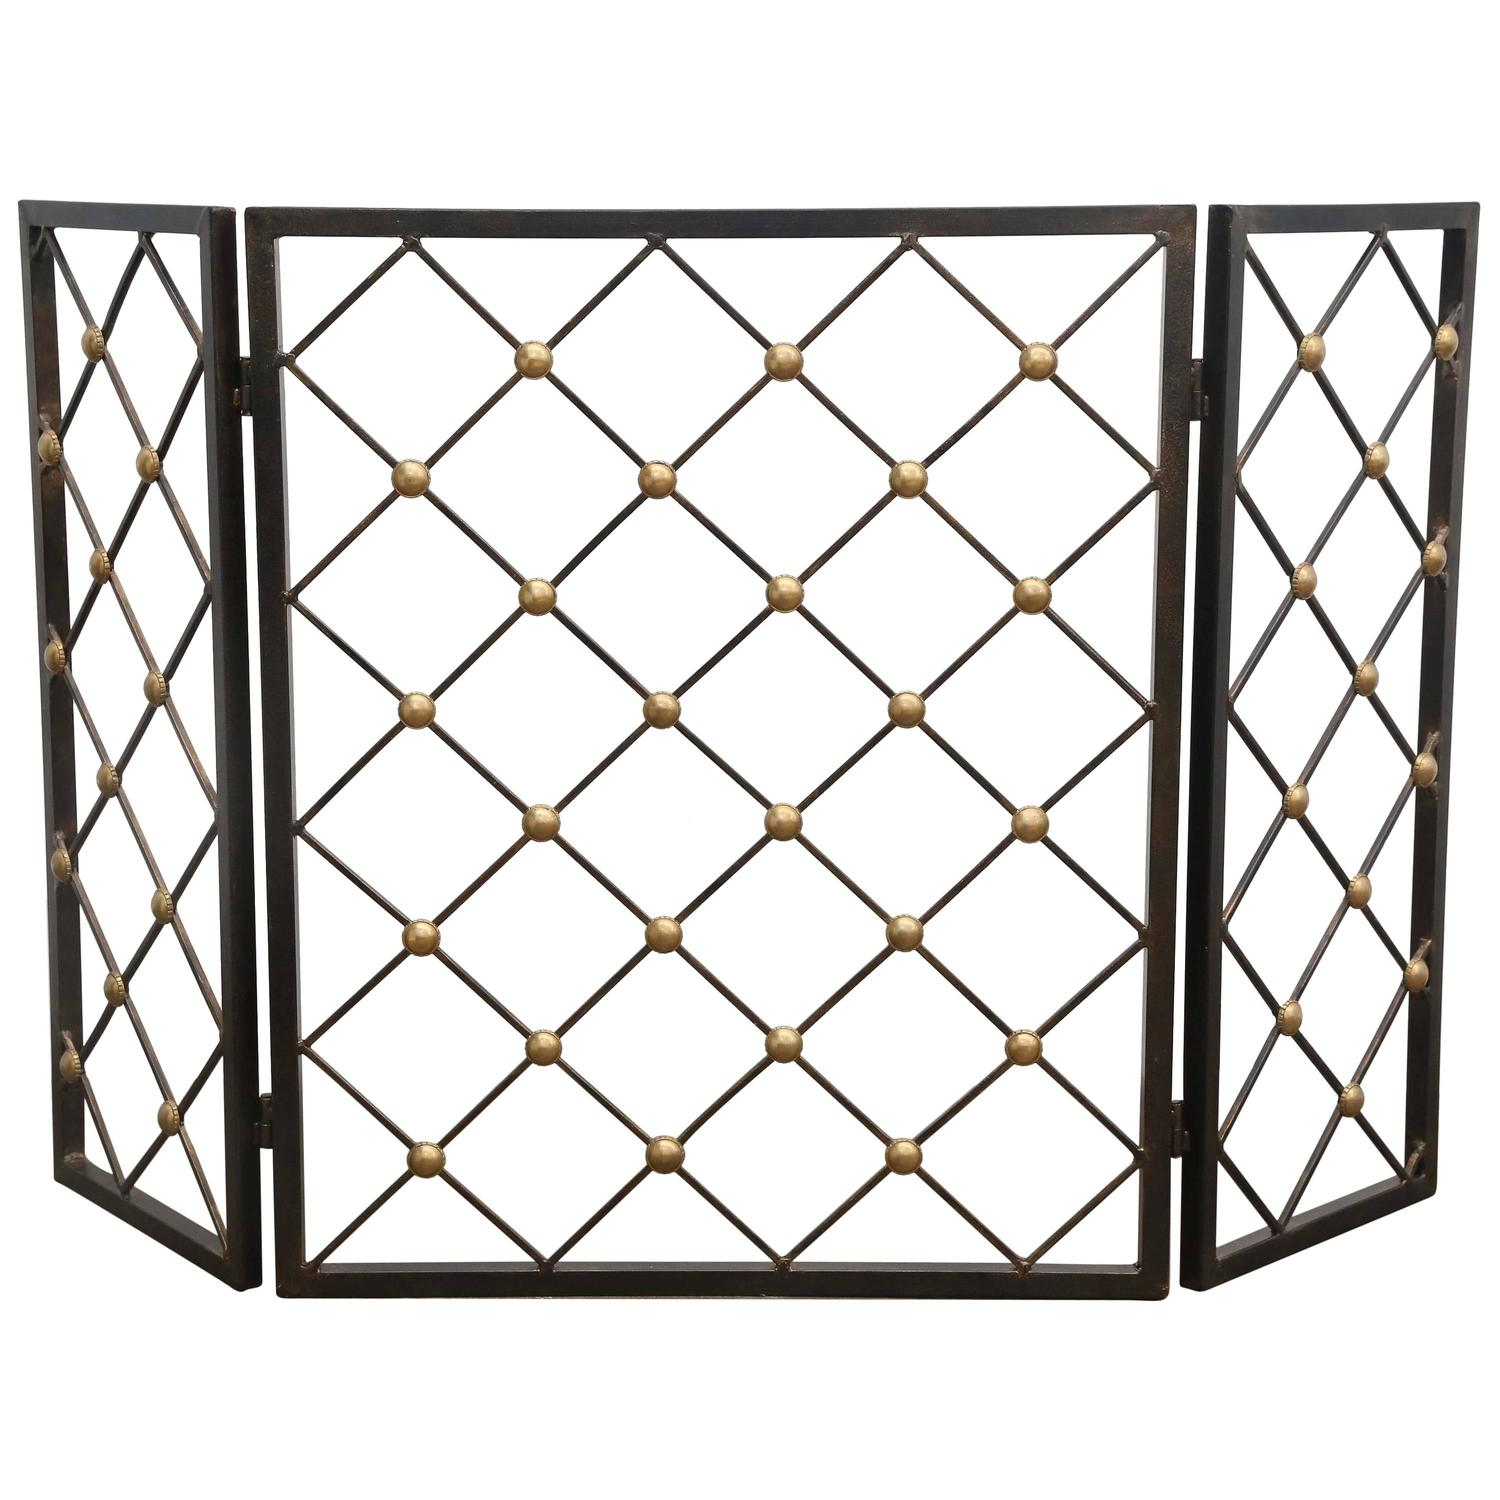 Jean Royere Style Wrought Iron And Brass Tour Eiffel Folding Fire Screen For Sale At 1stdibs